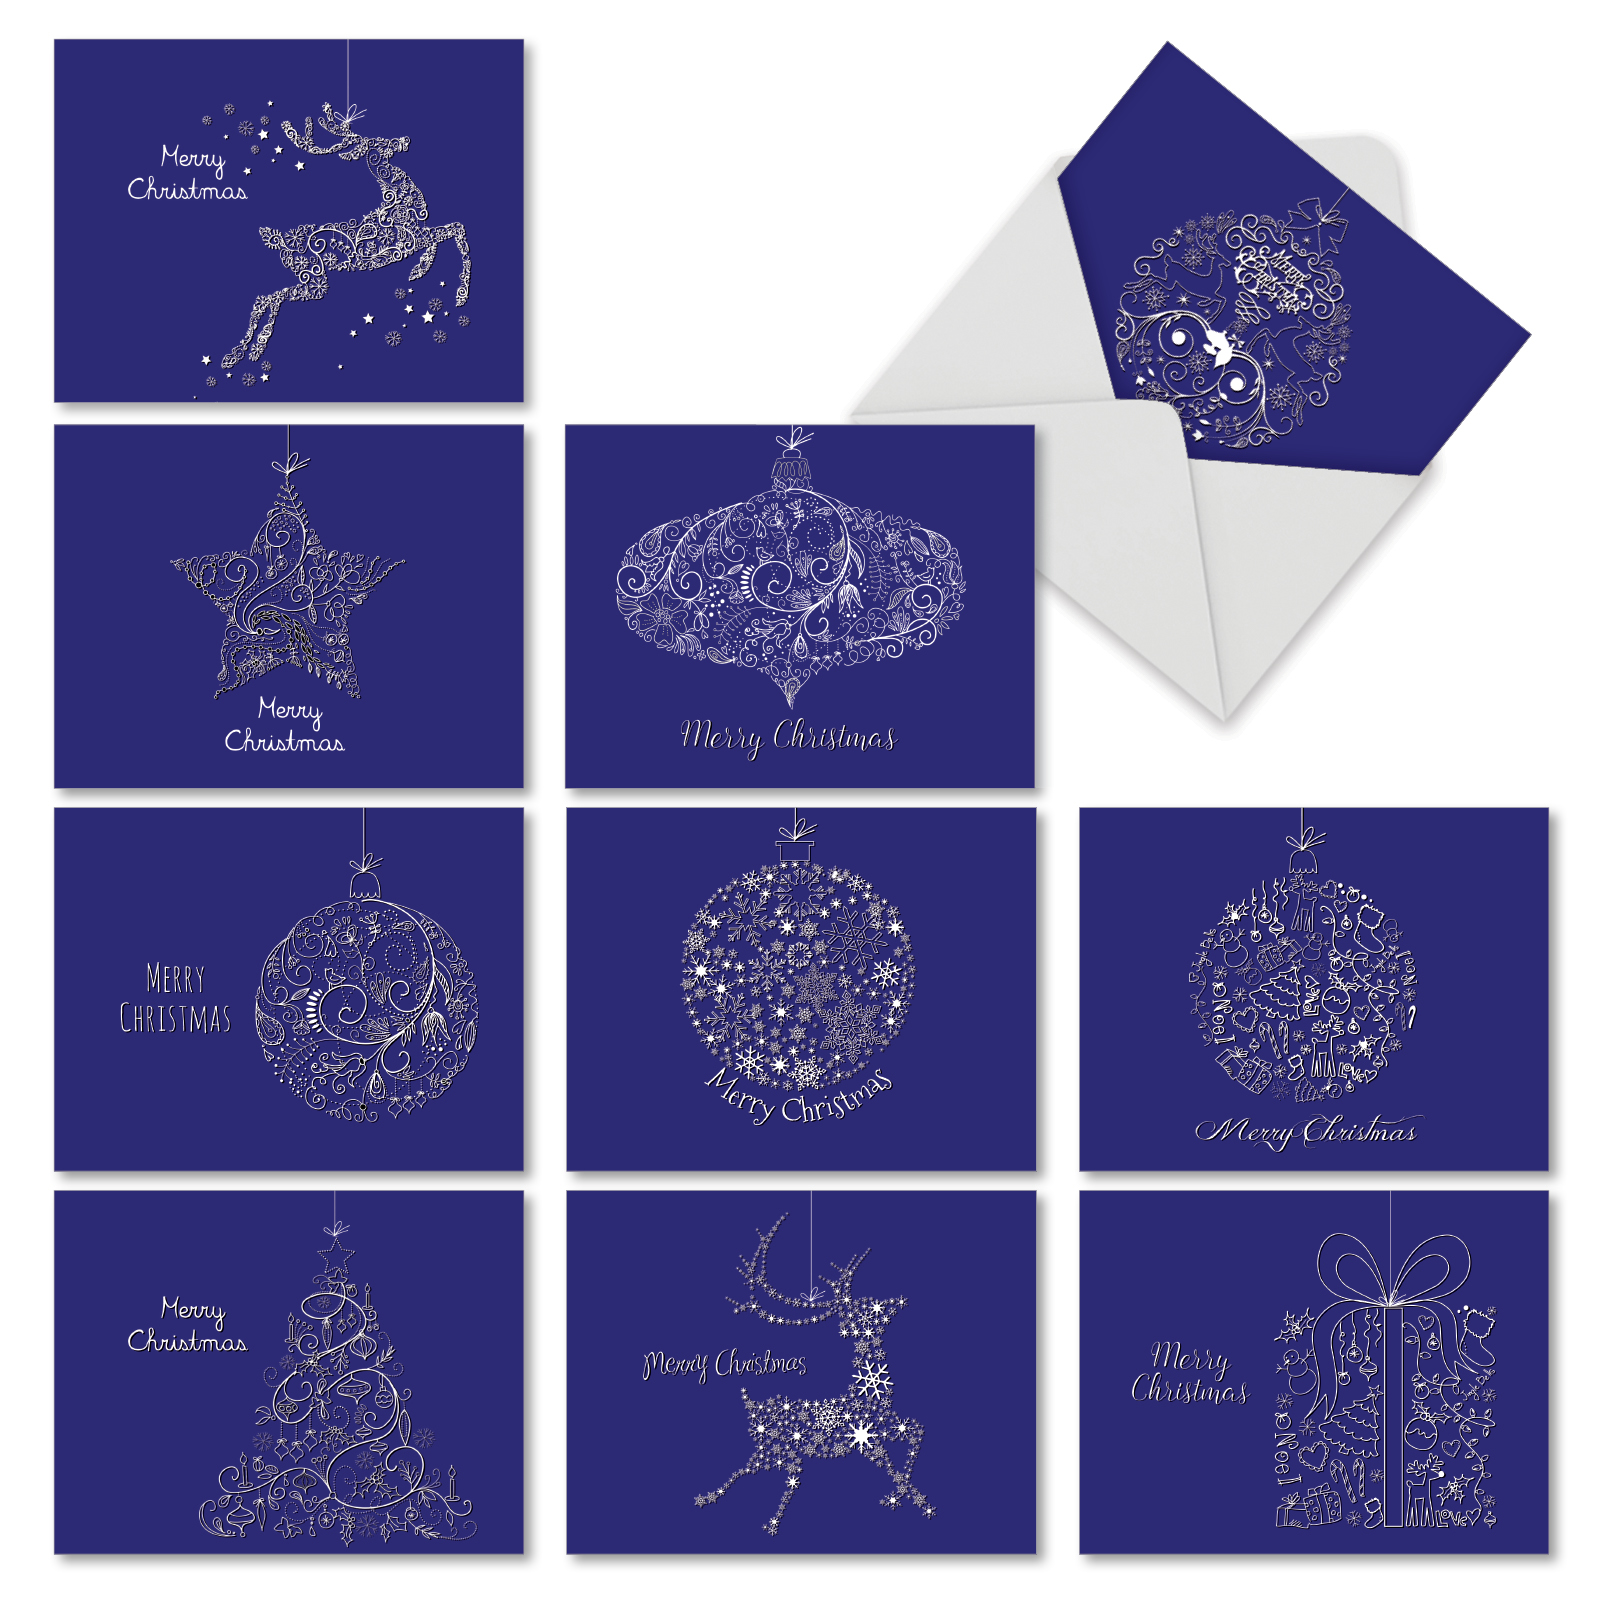 'M2941XSB HOLIDAY IMPRESSIONS' 10 Assorted Merry Christmas Note Cards Featuring Swirly Doodle Designs of Holiday Icons Against a Dark Blue Background, with Envelopes by The Best Card Company